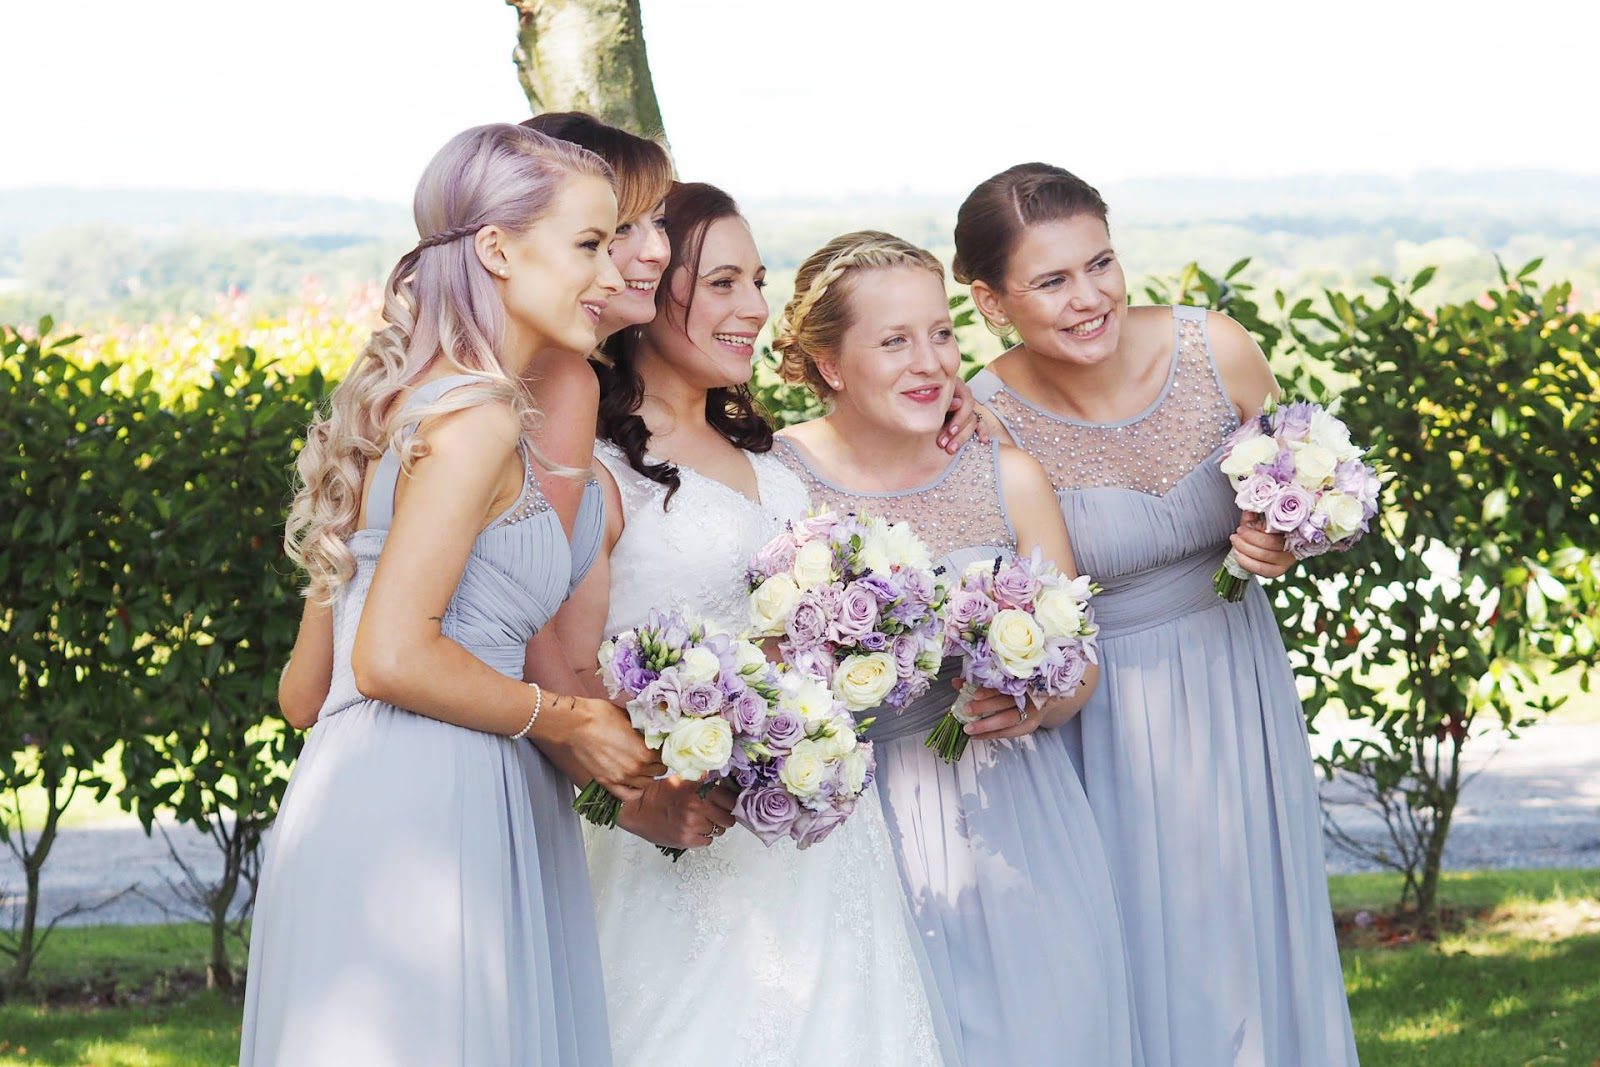 Bridesmaid dress inspiration eat travel love travel and inthefrow little mistress bridesmaid dresses ombrellifo Gallery